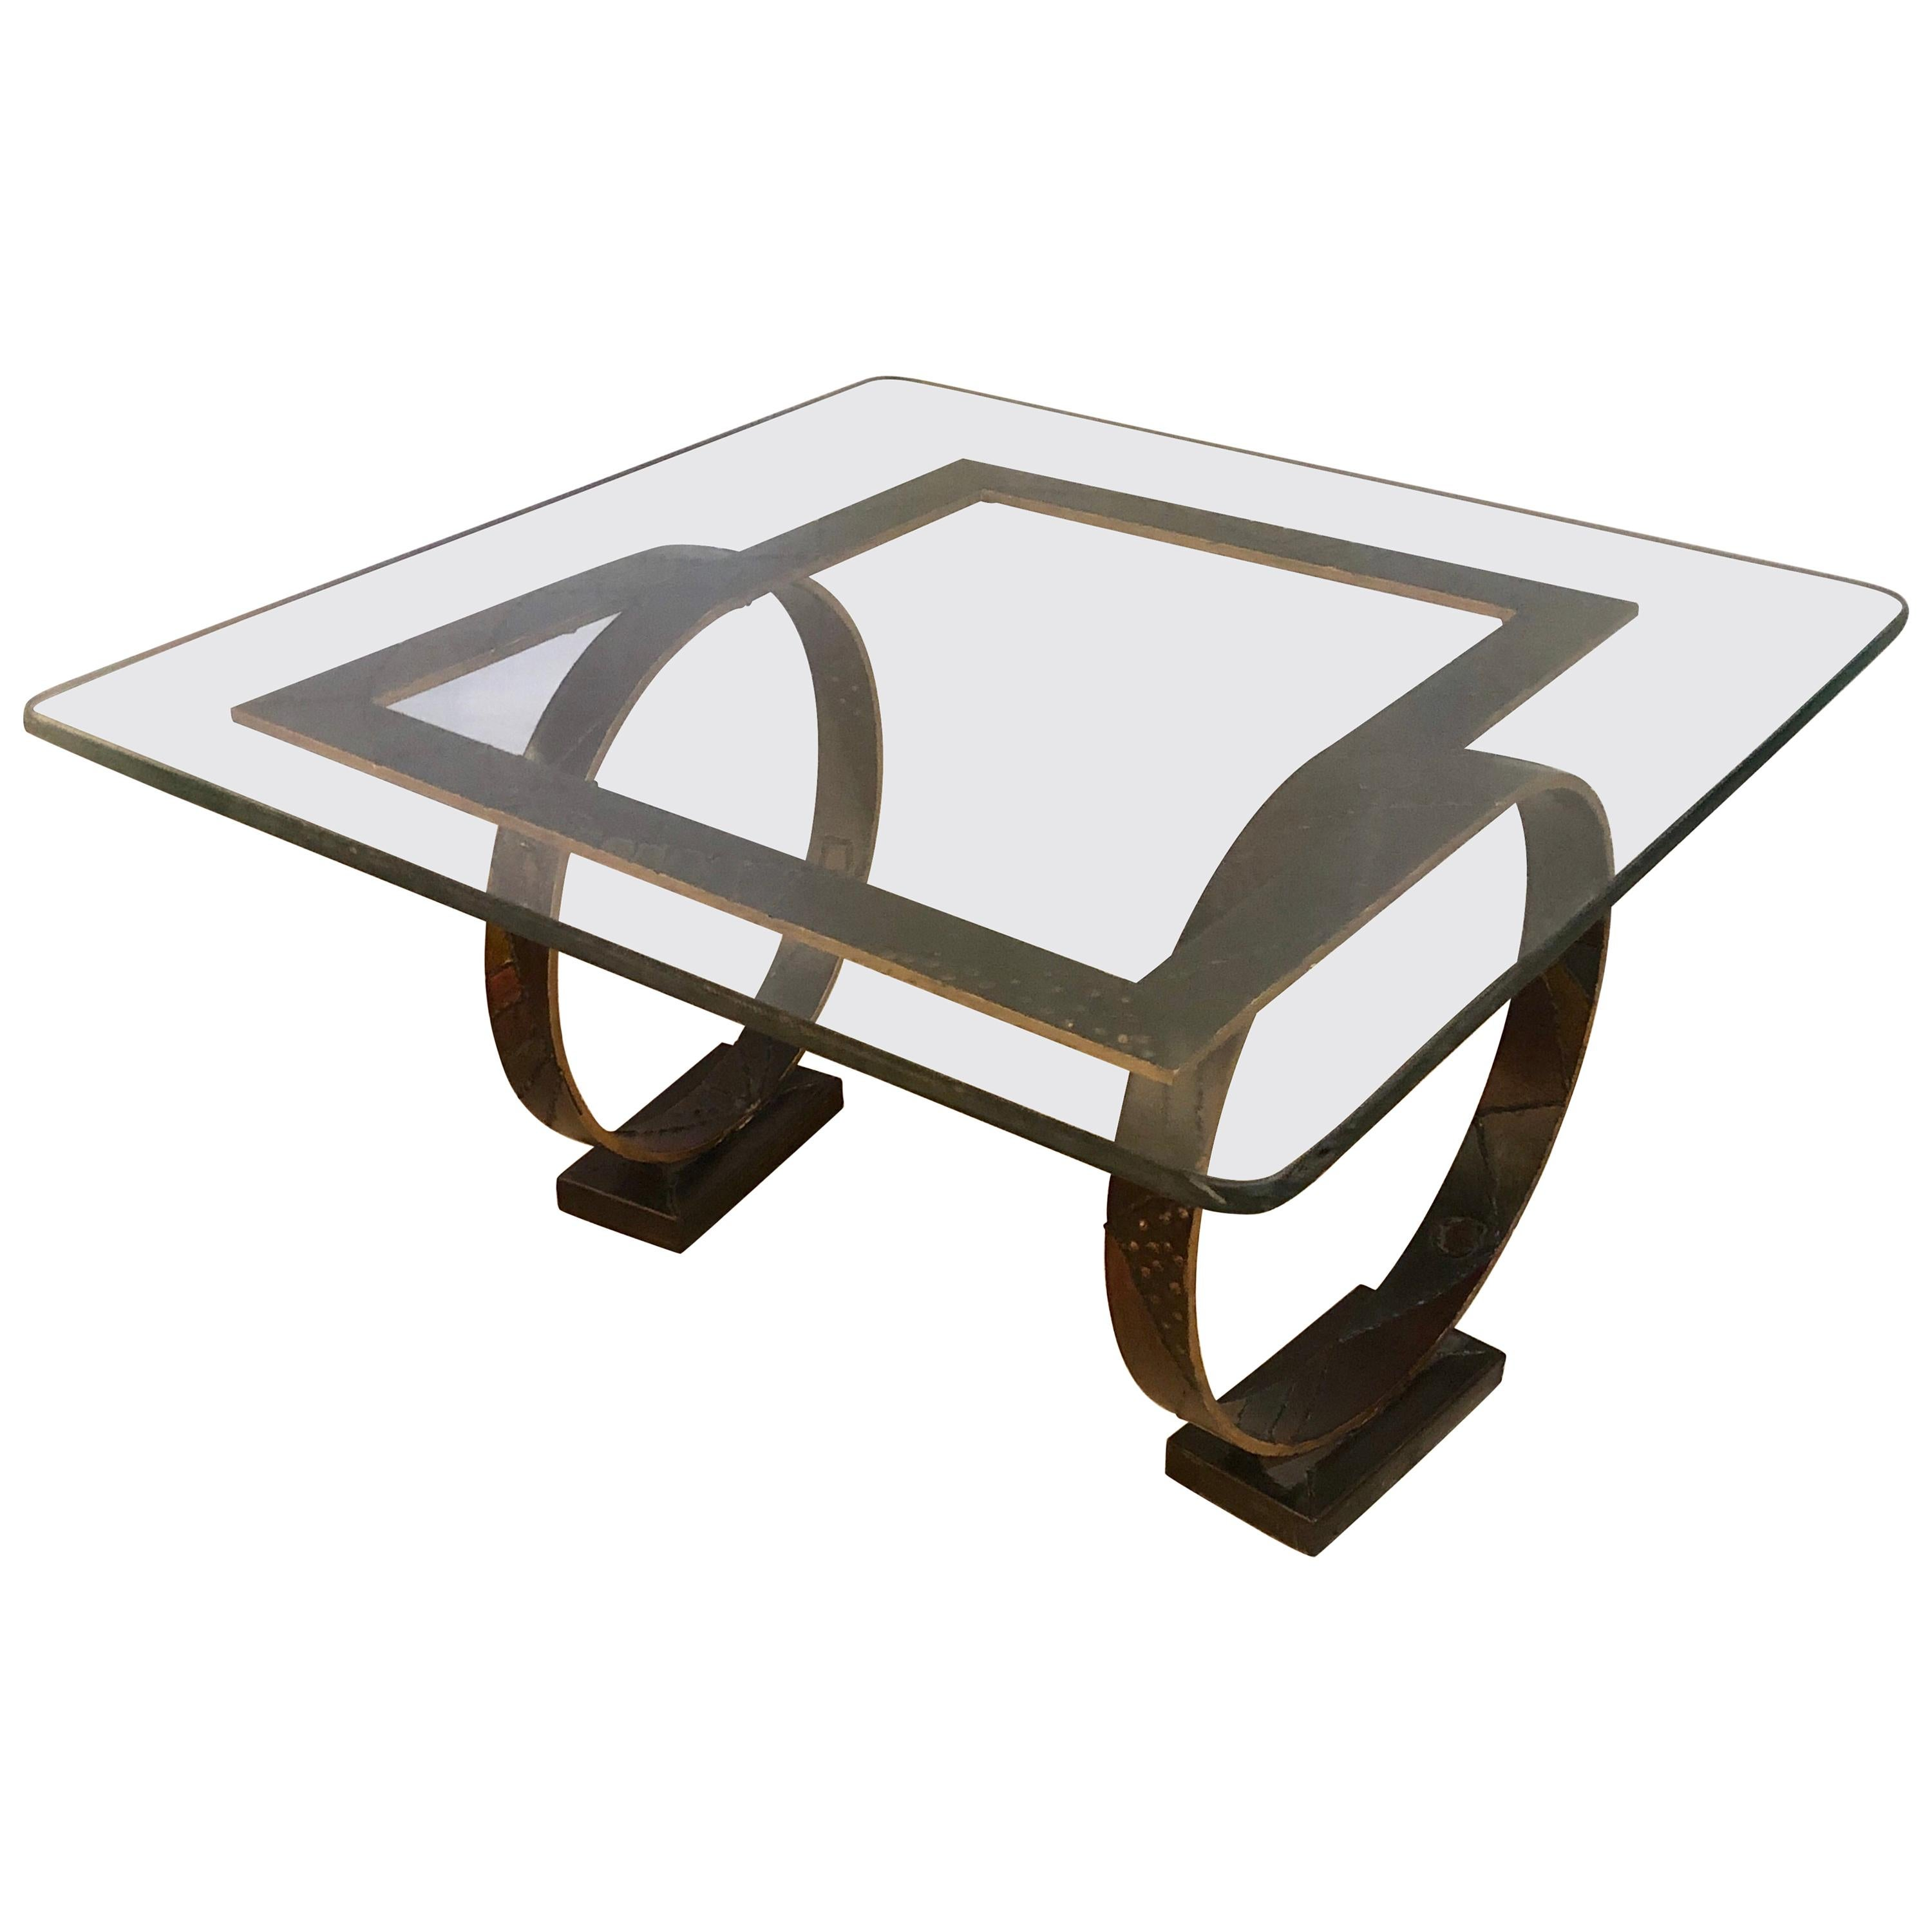 Paul Evans Style Square Welded Coffee Table Metal Base and Feet